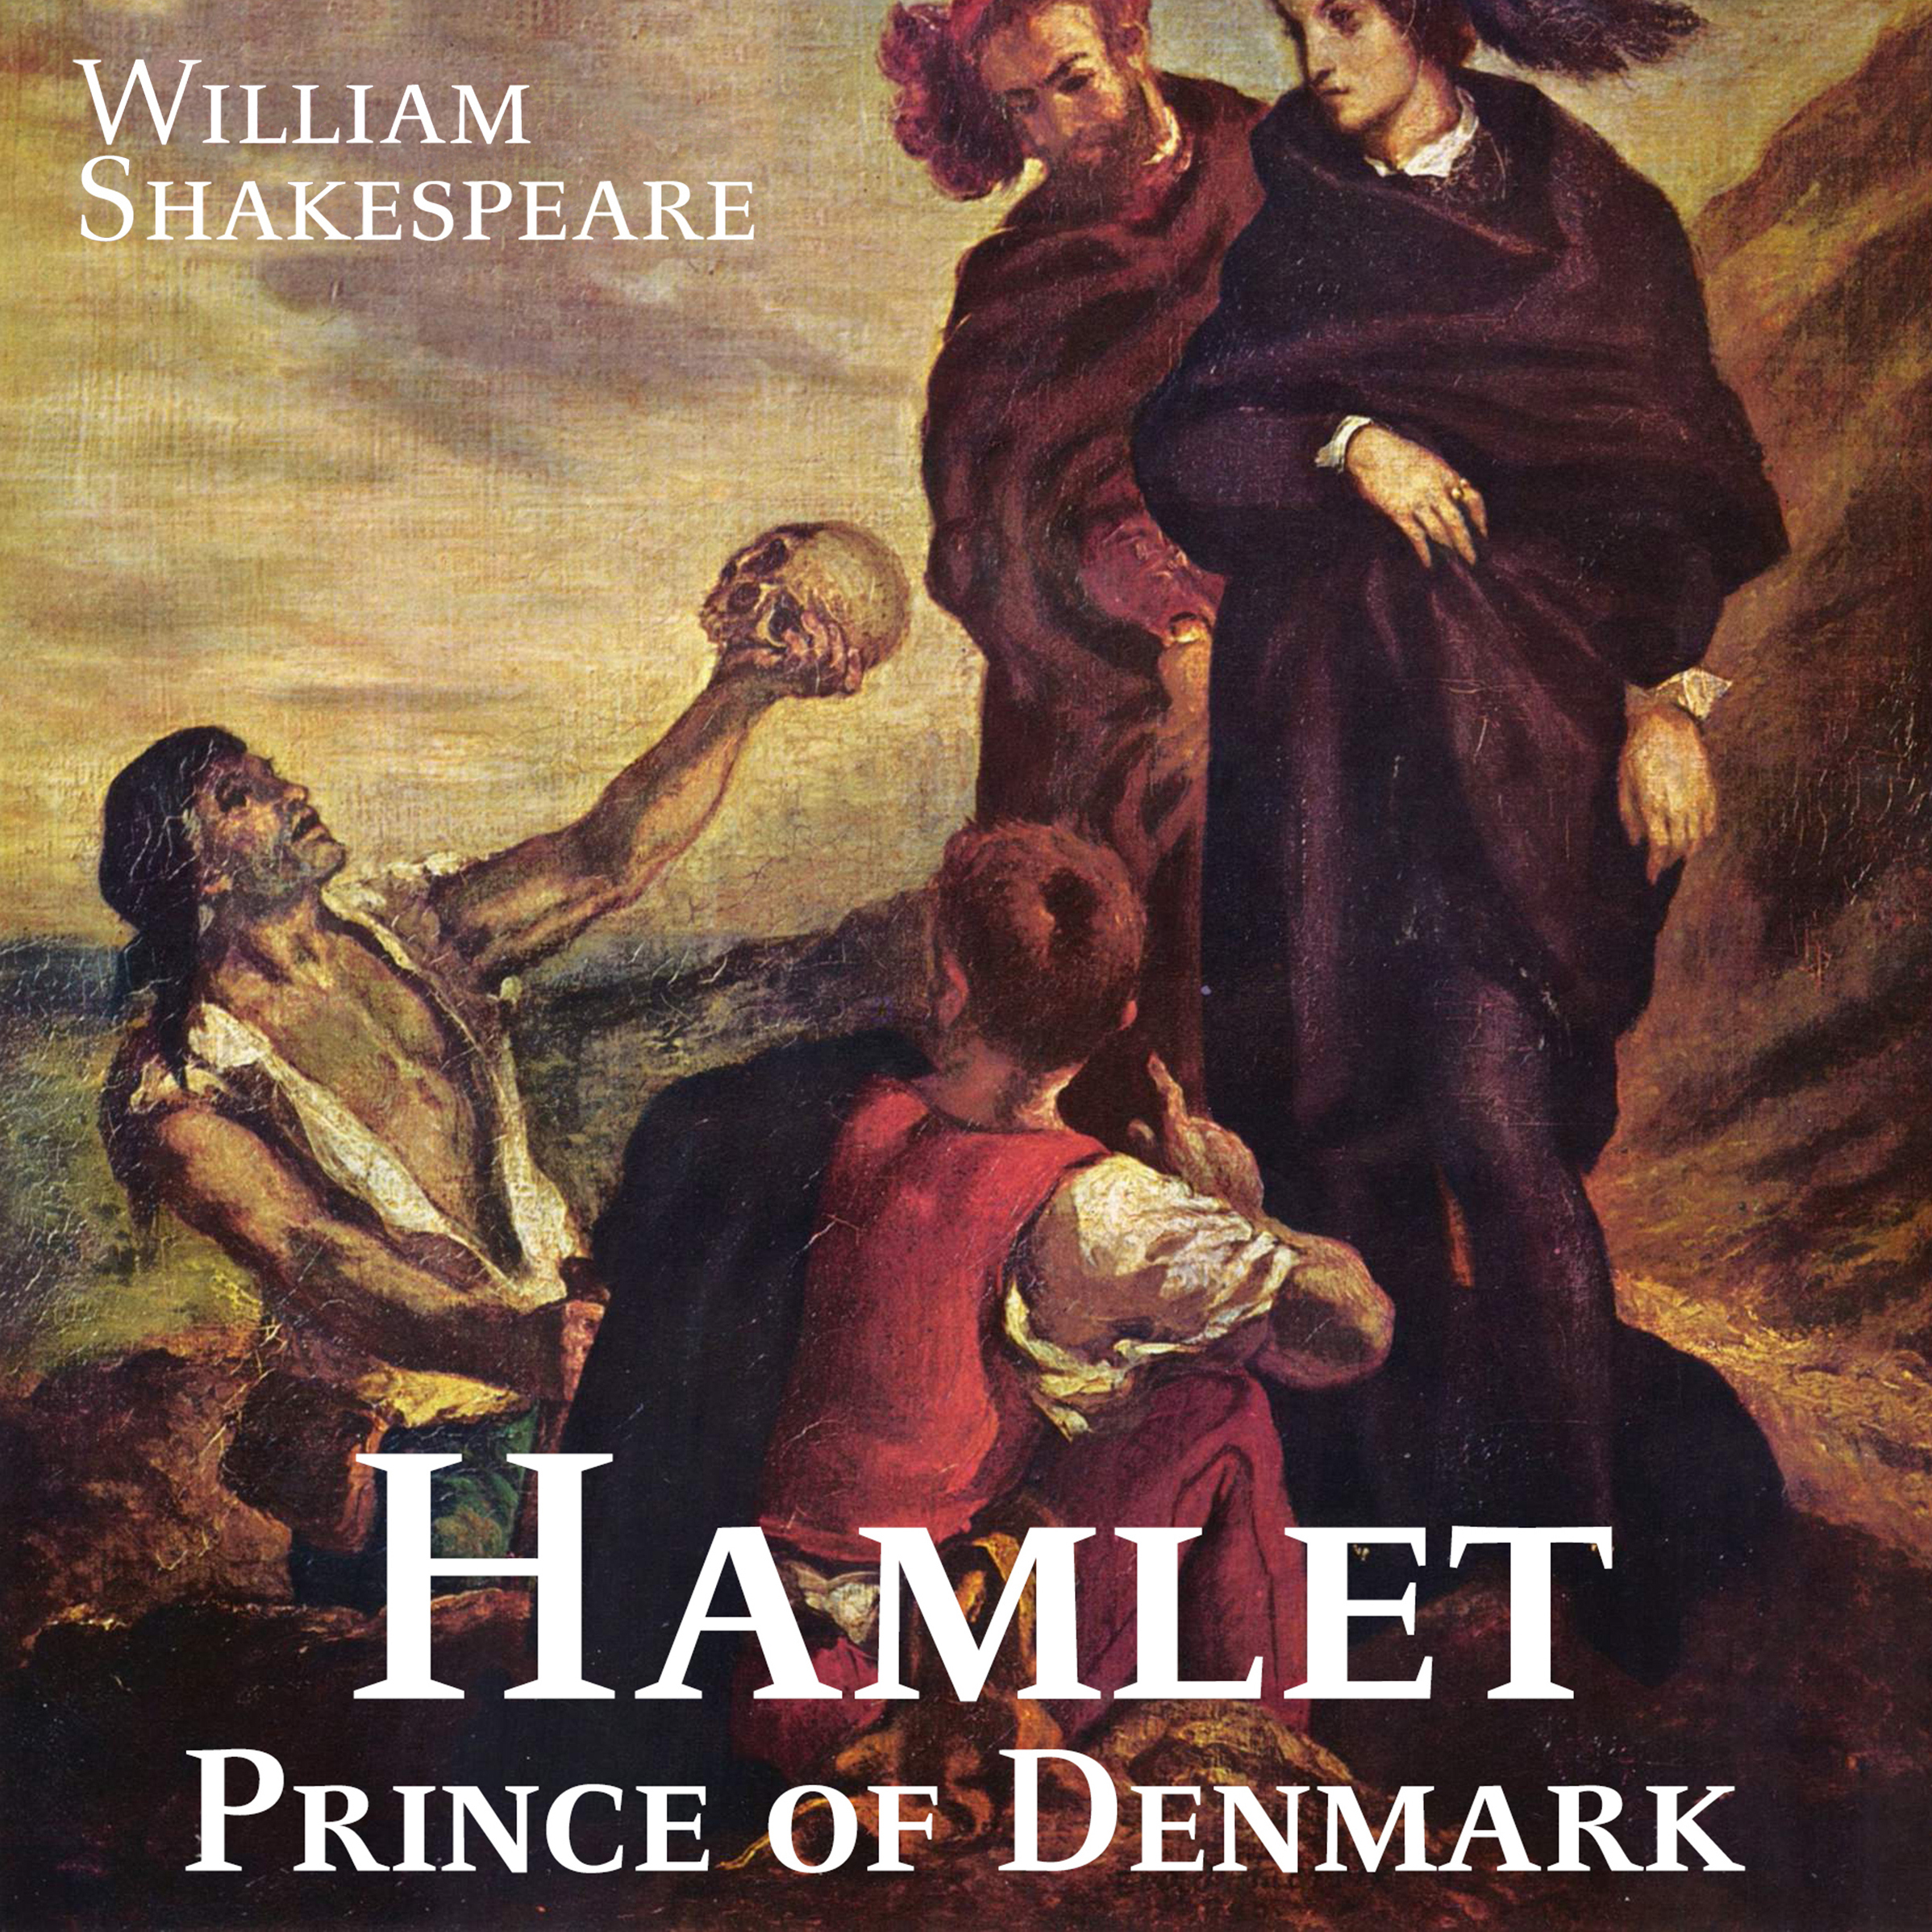 the corruption of denmark in william Denmark by william shakespeare and doctor faustus by christopher marlowe have many elements of drama in common, including the theme of corruption hamlet experienced corruption in more of a human way for example, hamlet had to be sure that claudius was guilty before he would exact his.